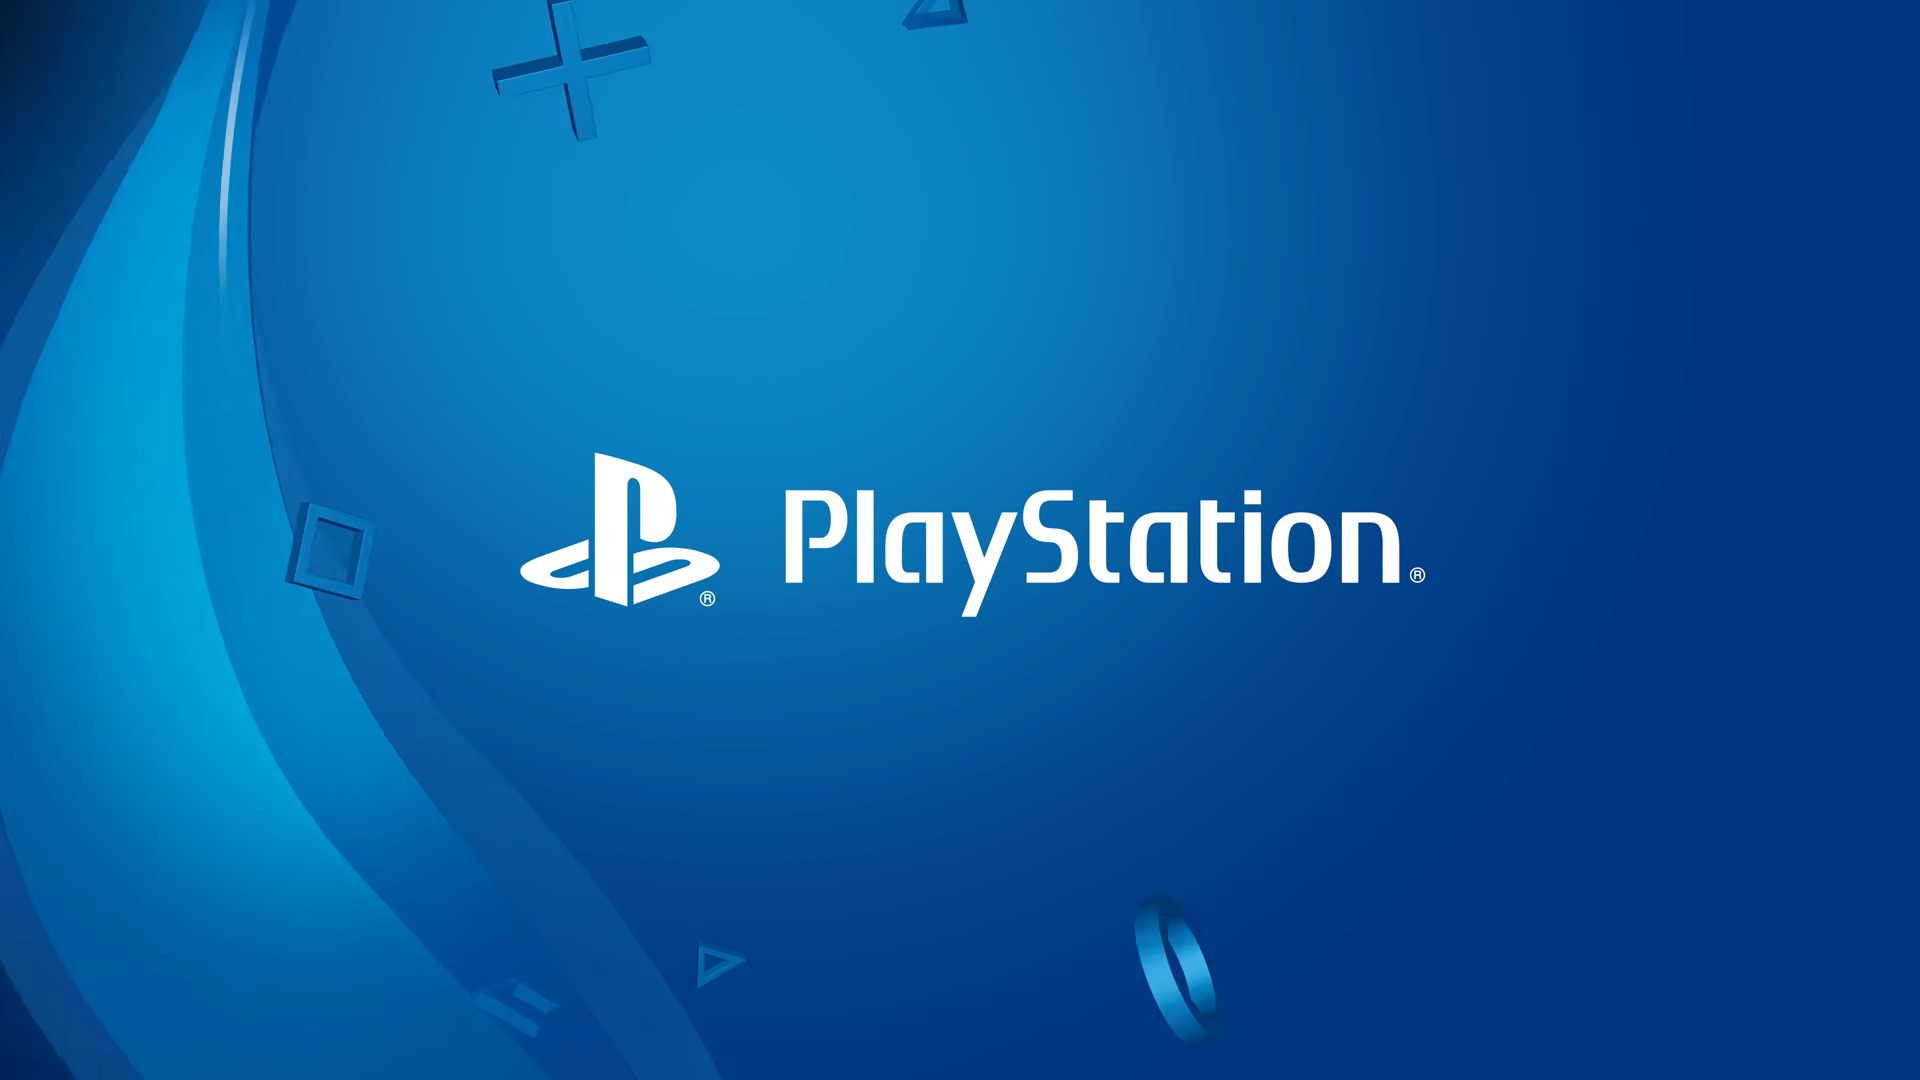 Shuhei Yoshida claims devs love the PS5